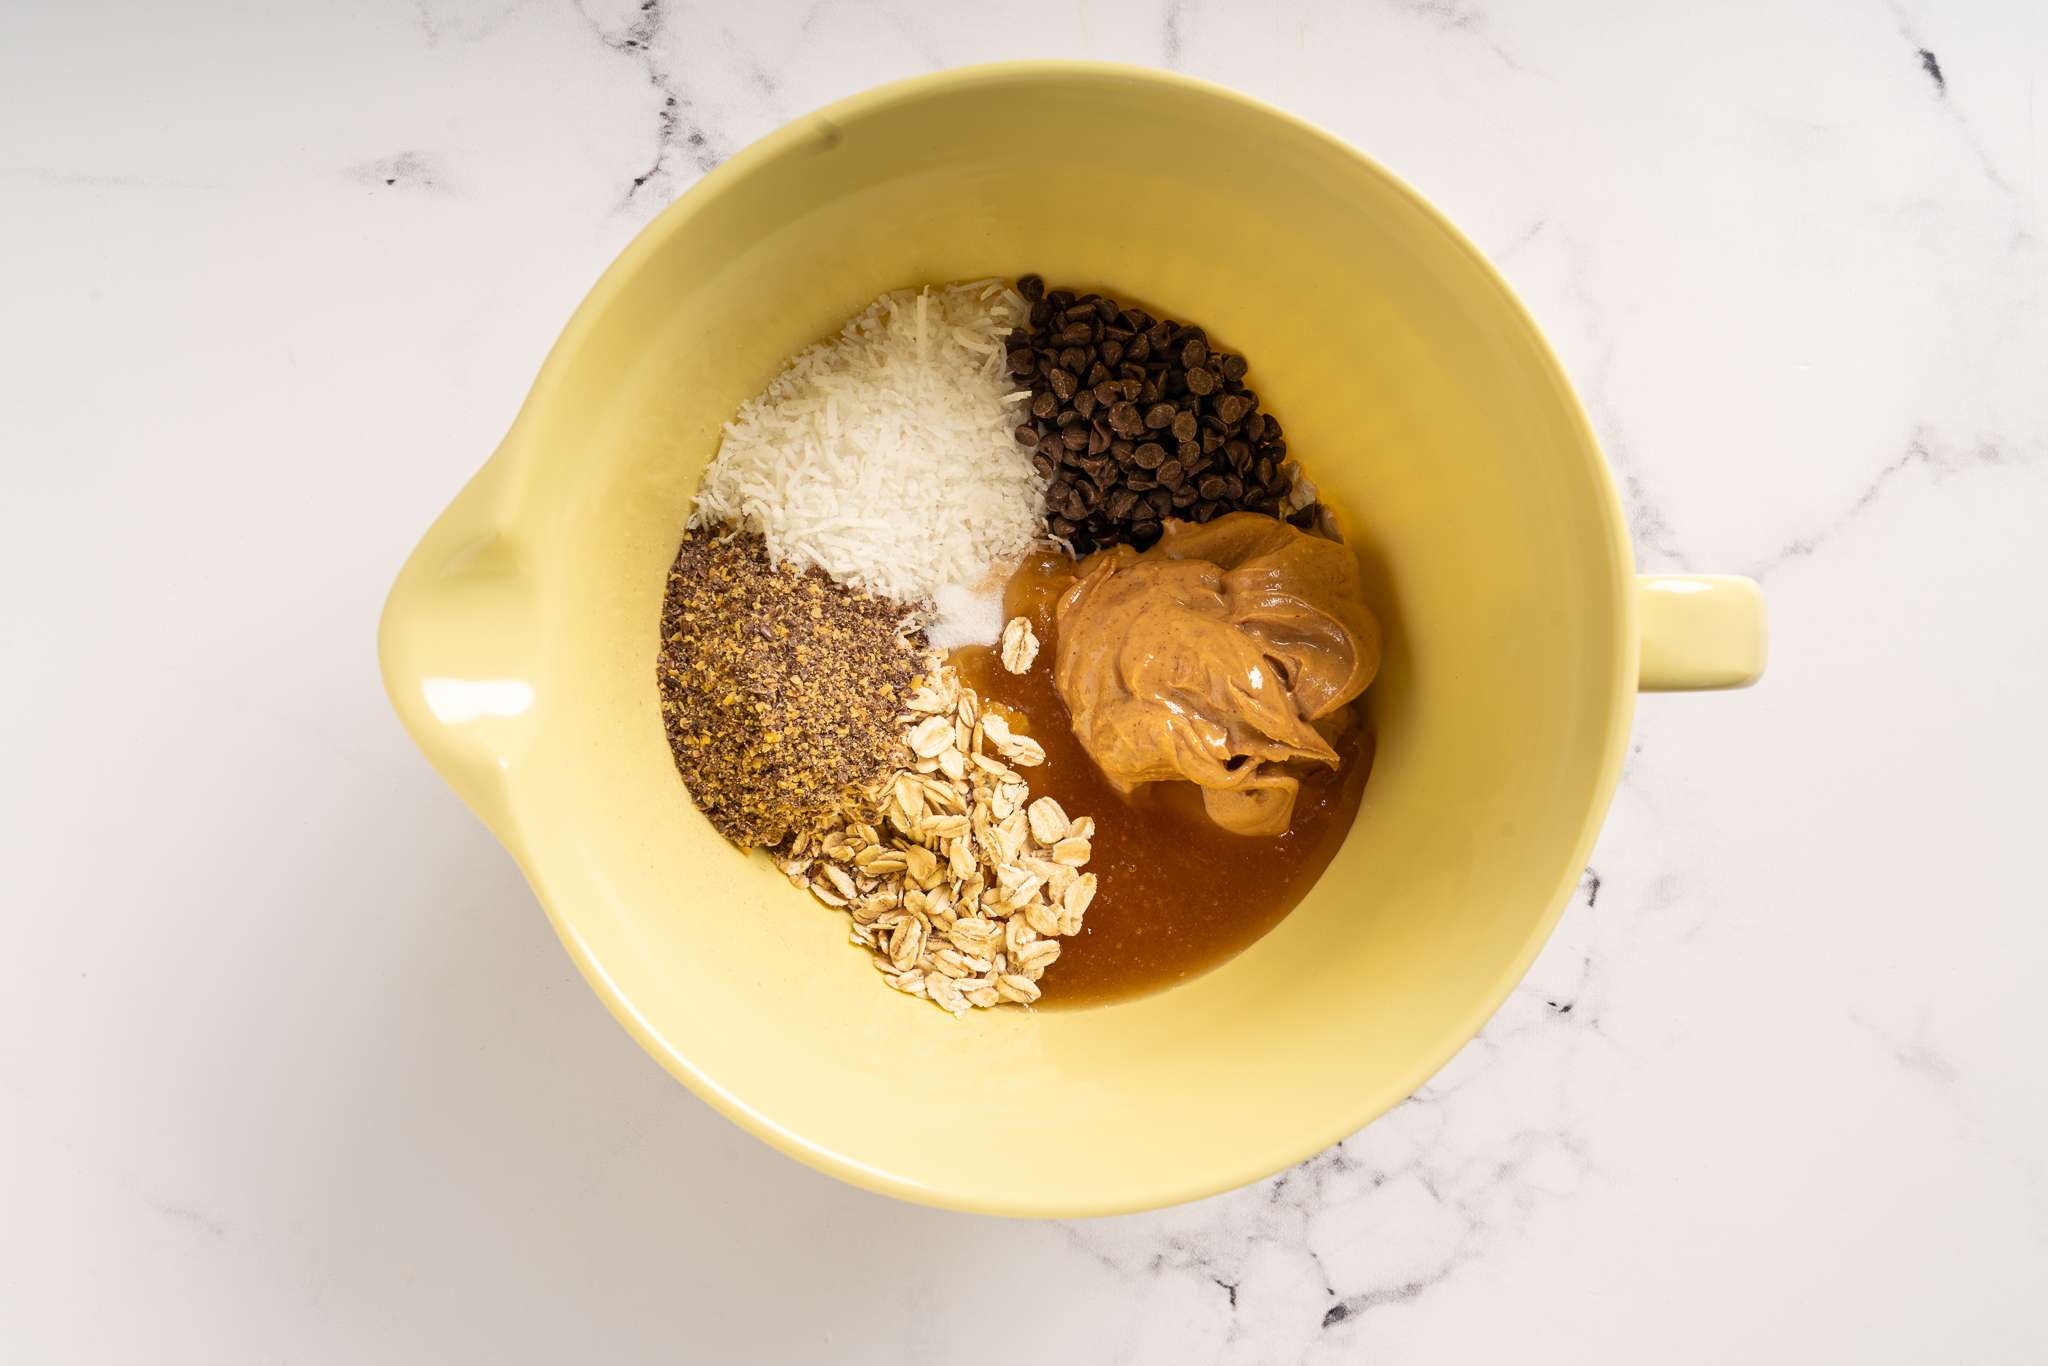 Combine oats, coconut flakes, peanut butter, honey, chocolate chips, flax seed, vanilla extract, and salt in a large bowl